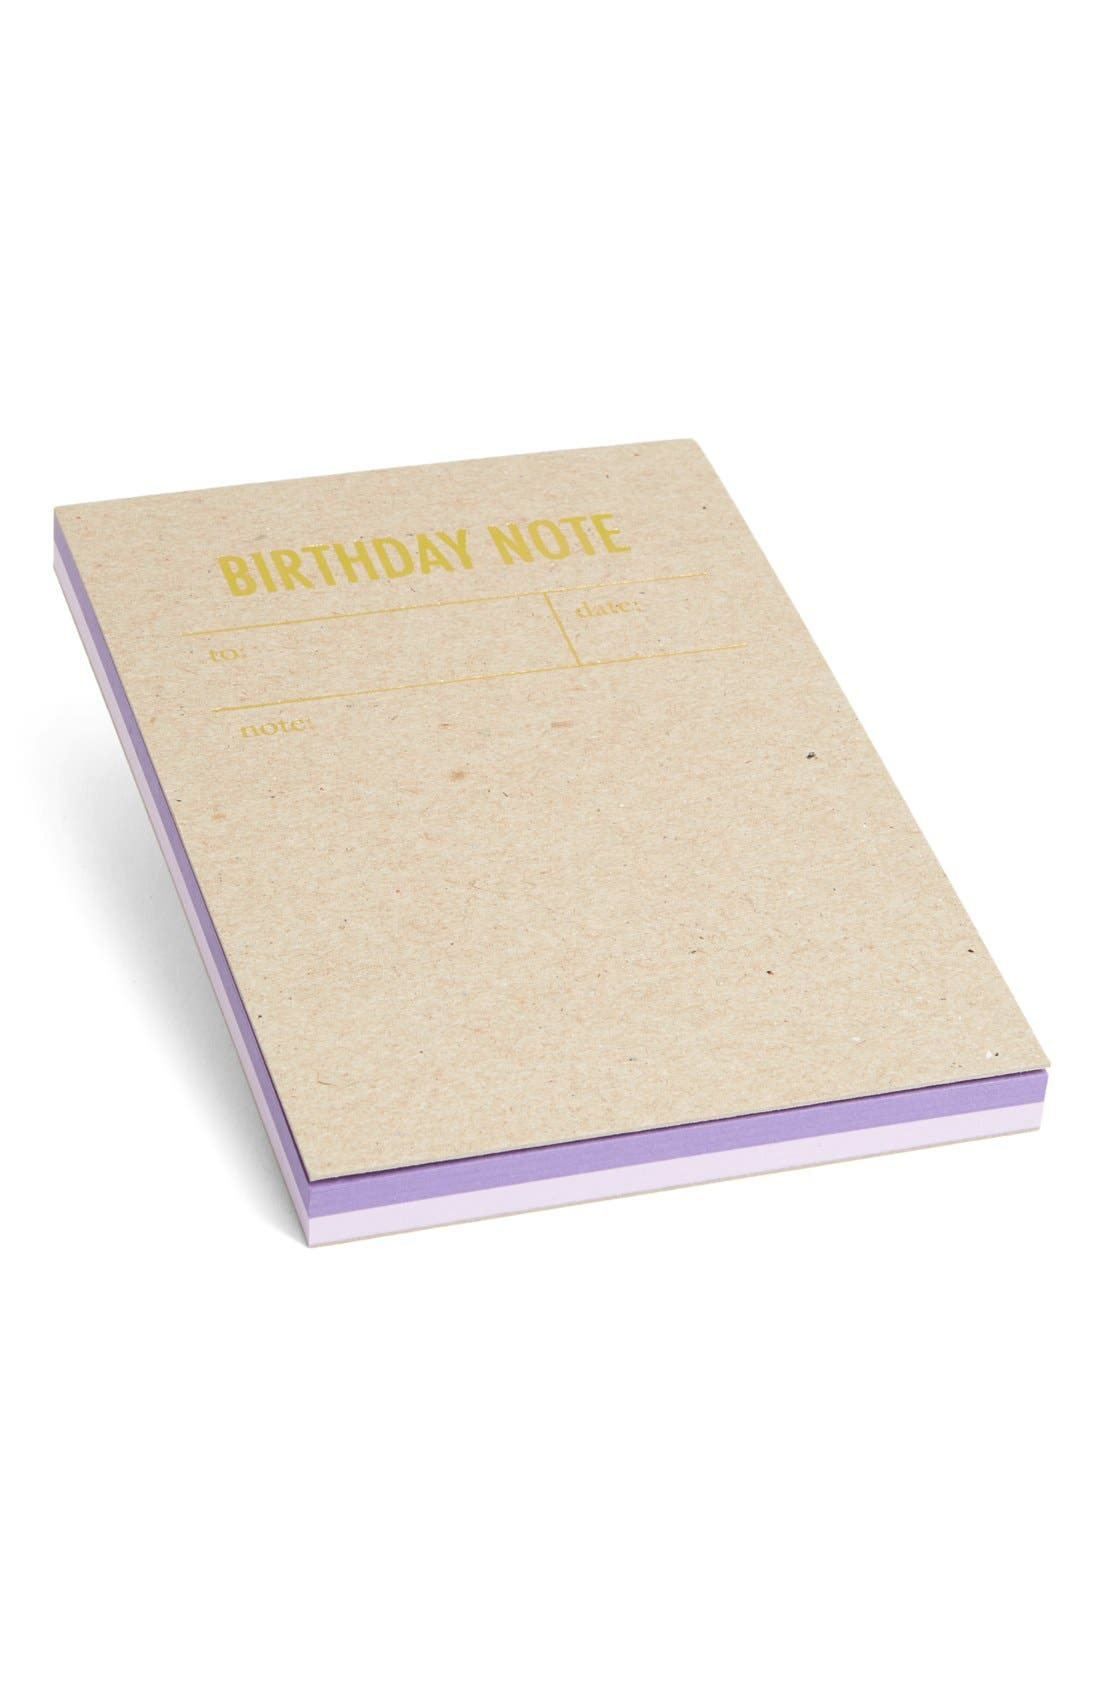 Main Image - Tokketok 'Birthday Note' Letterpress Note Cards (Set of 30)